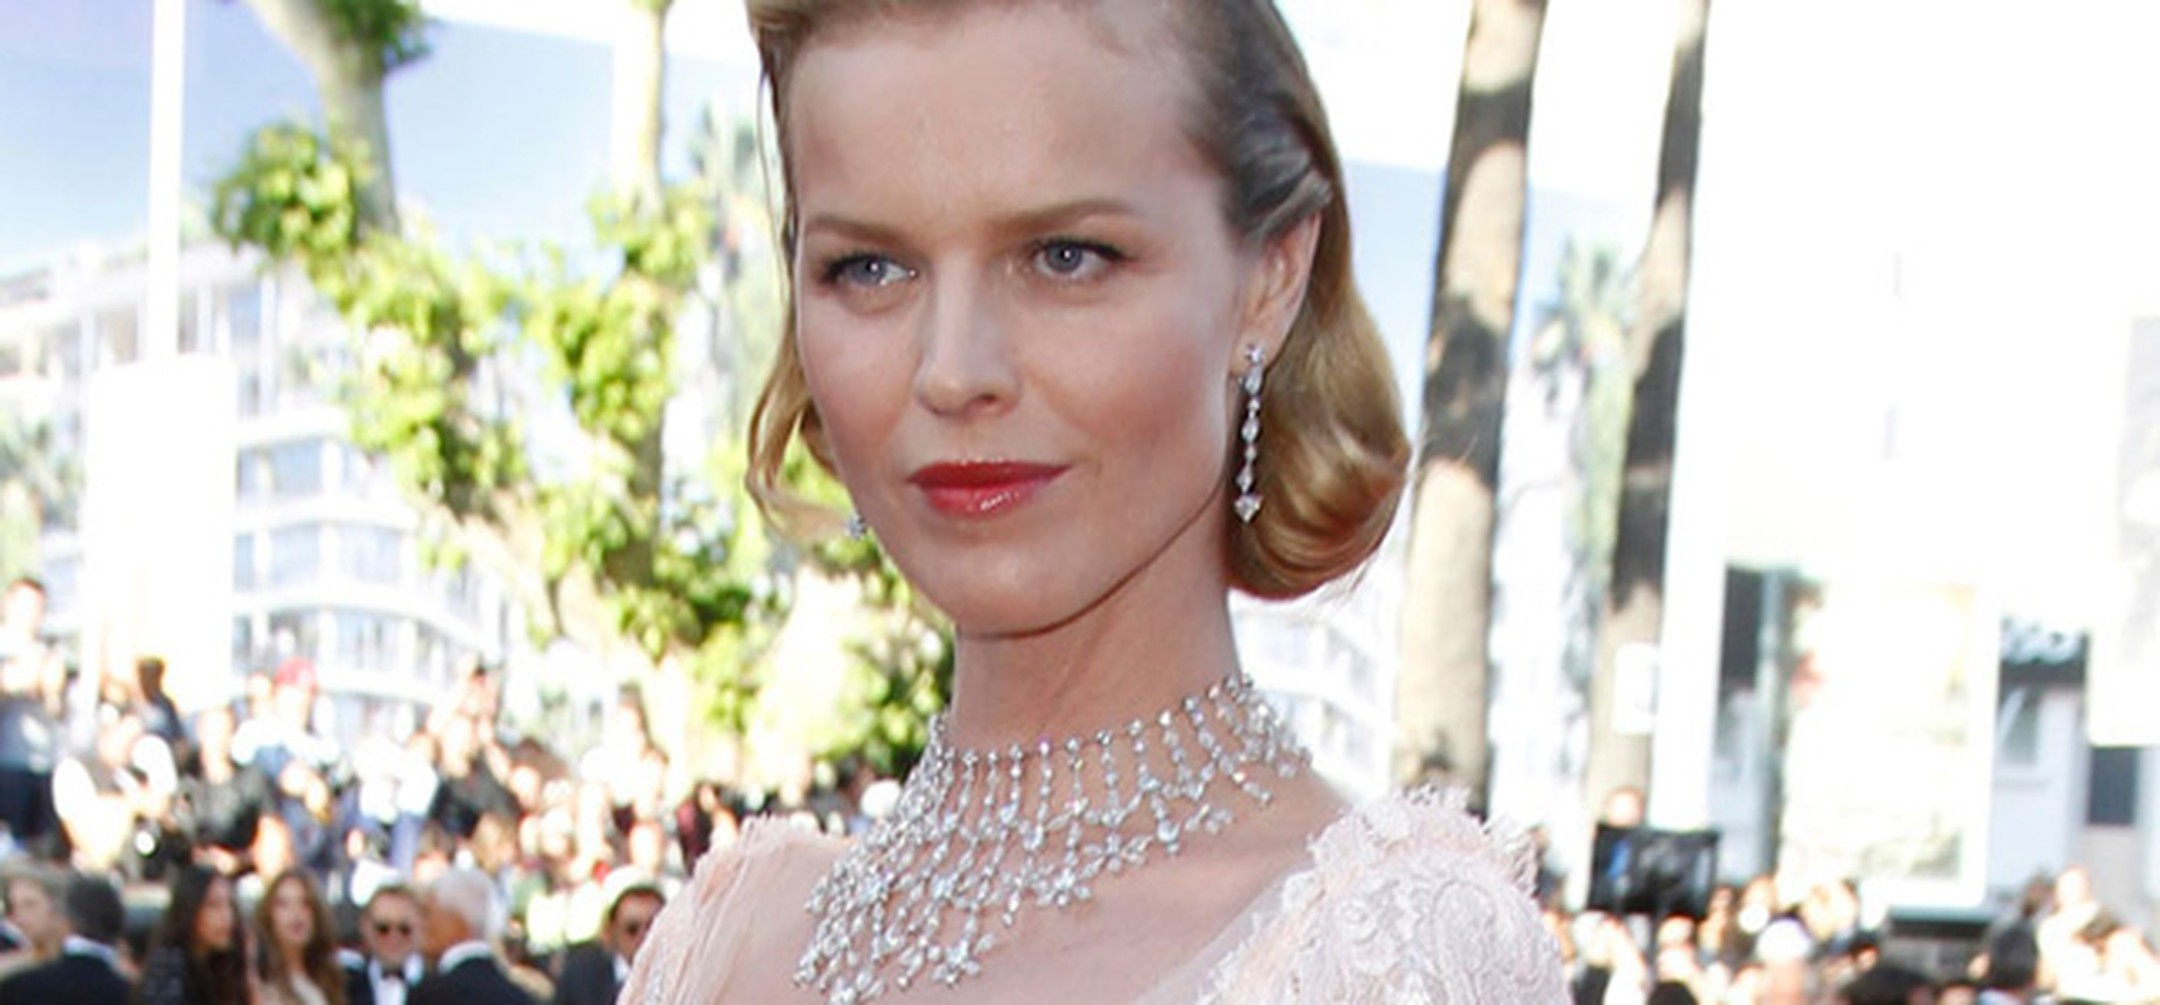 Eva_Herzigova_in_Chopard-Maryline-necklace.jpg